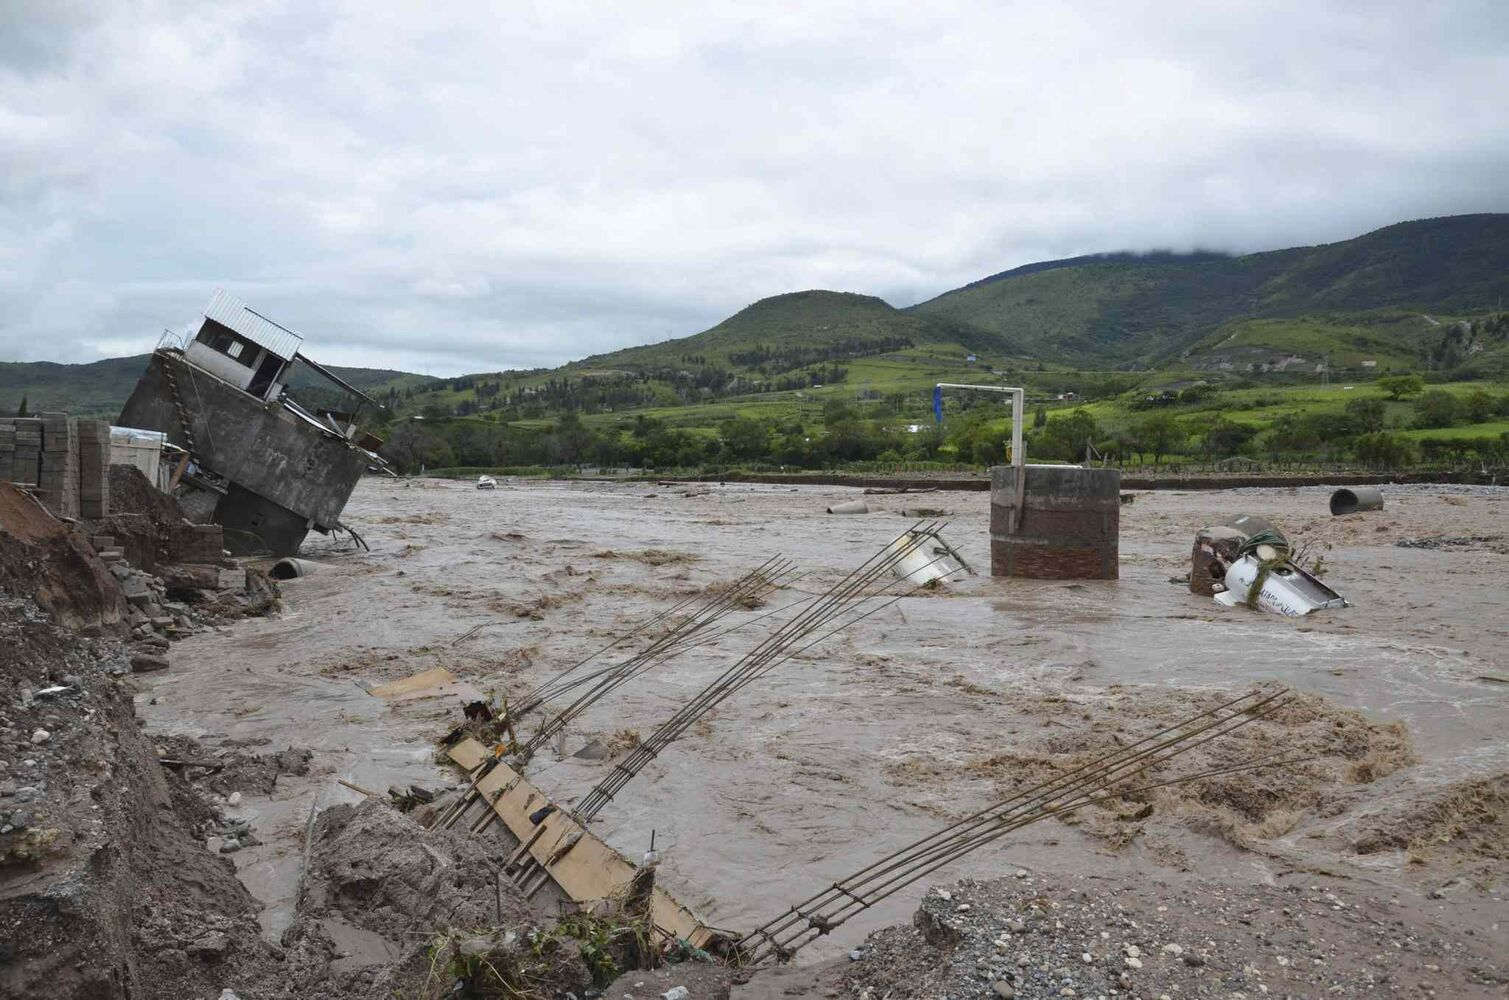 A home dangles on the banks of the Huacapa River overflowed due to heavy rains caused by Tropical Storm Manuel near the town of Petaquillas, Mexico, Tuesday, Sept. 17, 2013. An unknown number of homes were badly damaged by landslides and flooding.